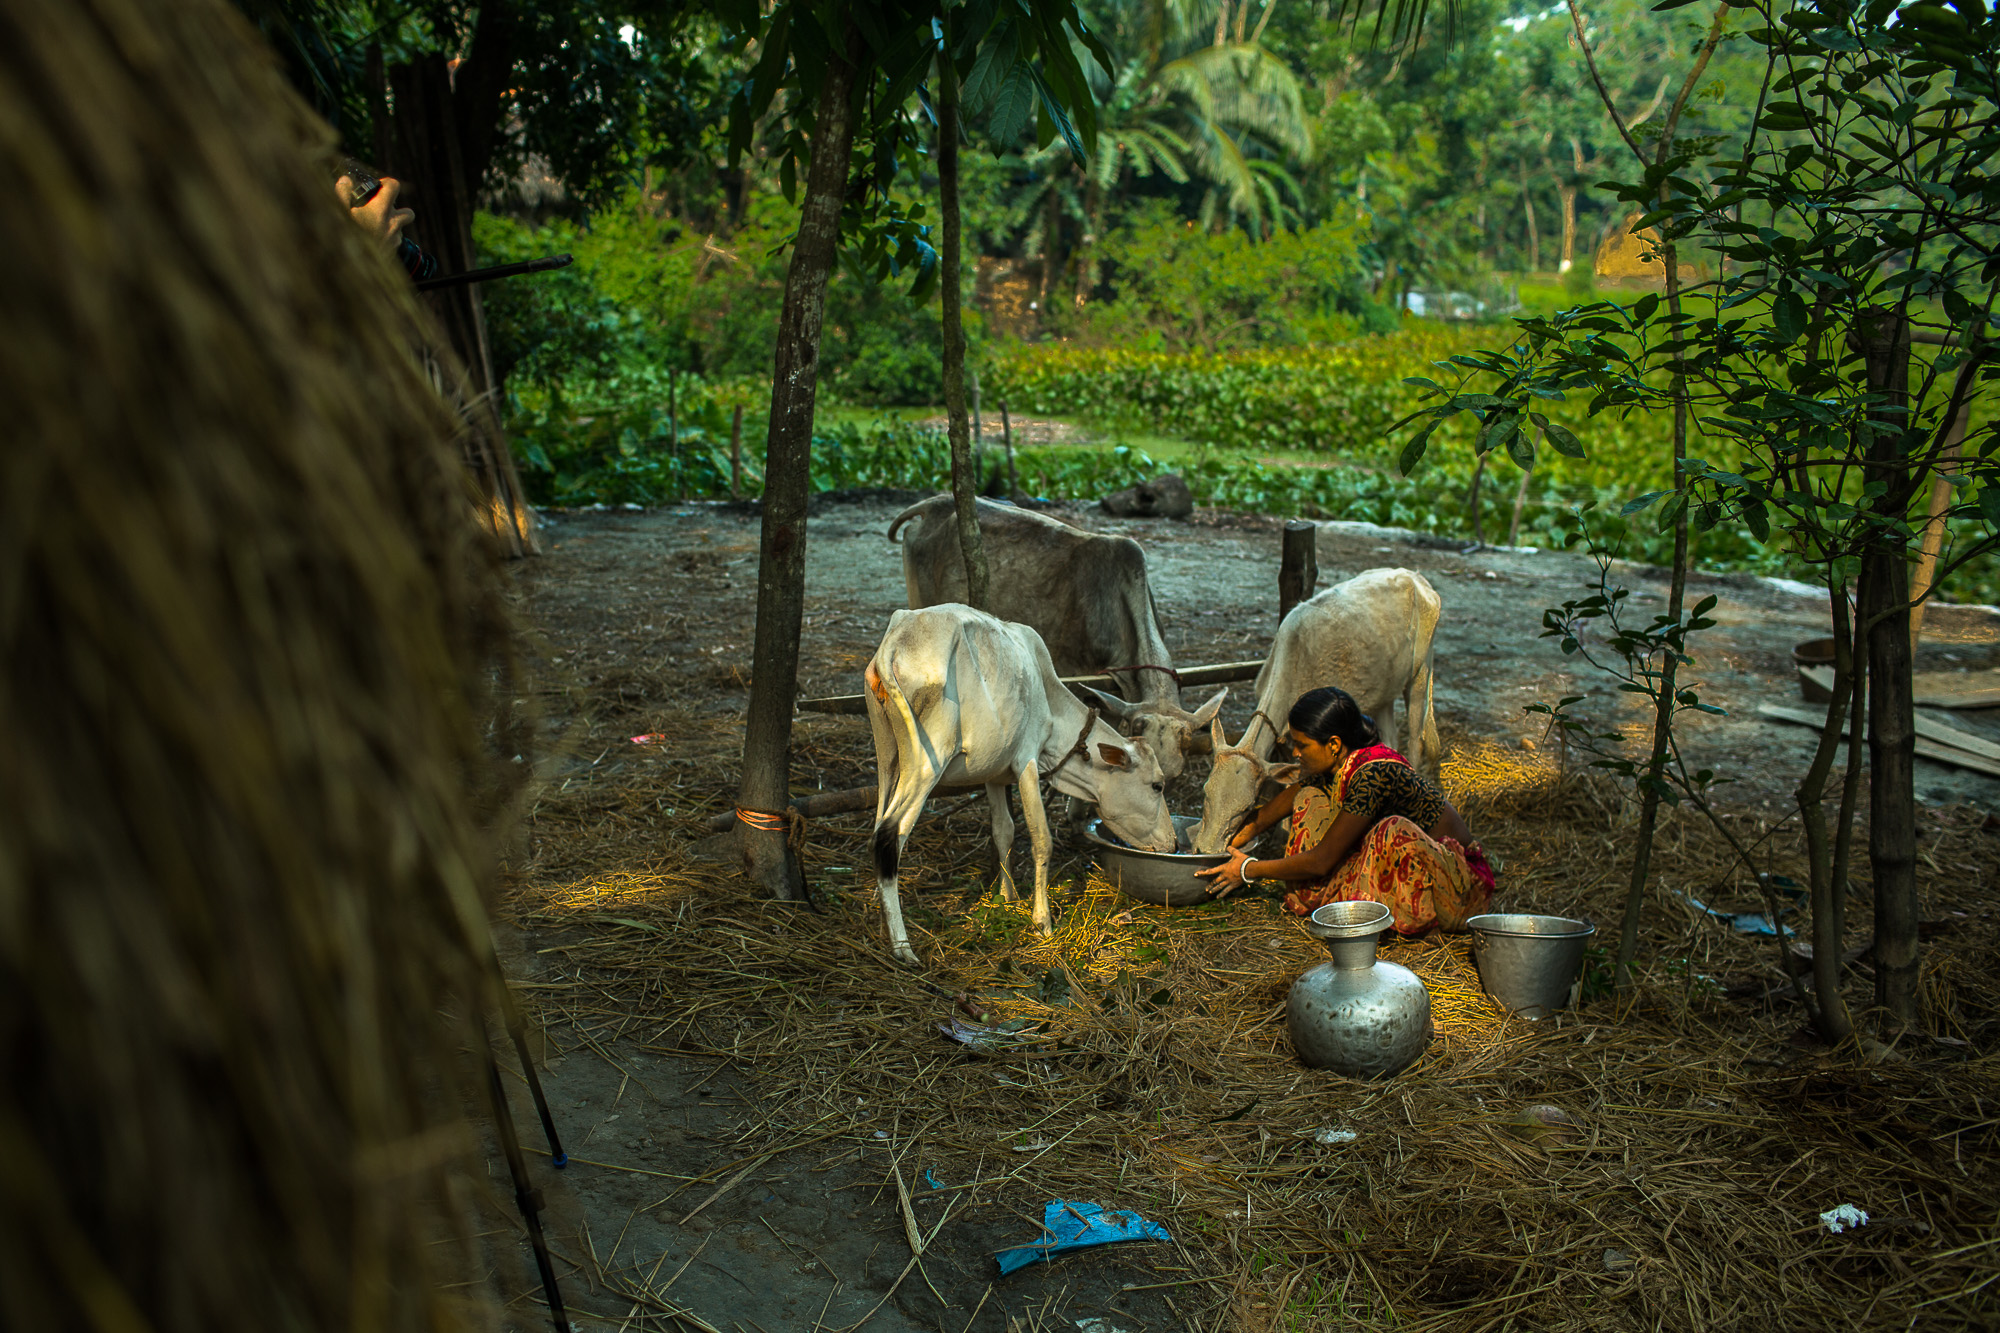 Taroni and his wife start each day tending to their cows.